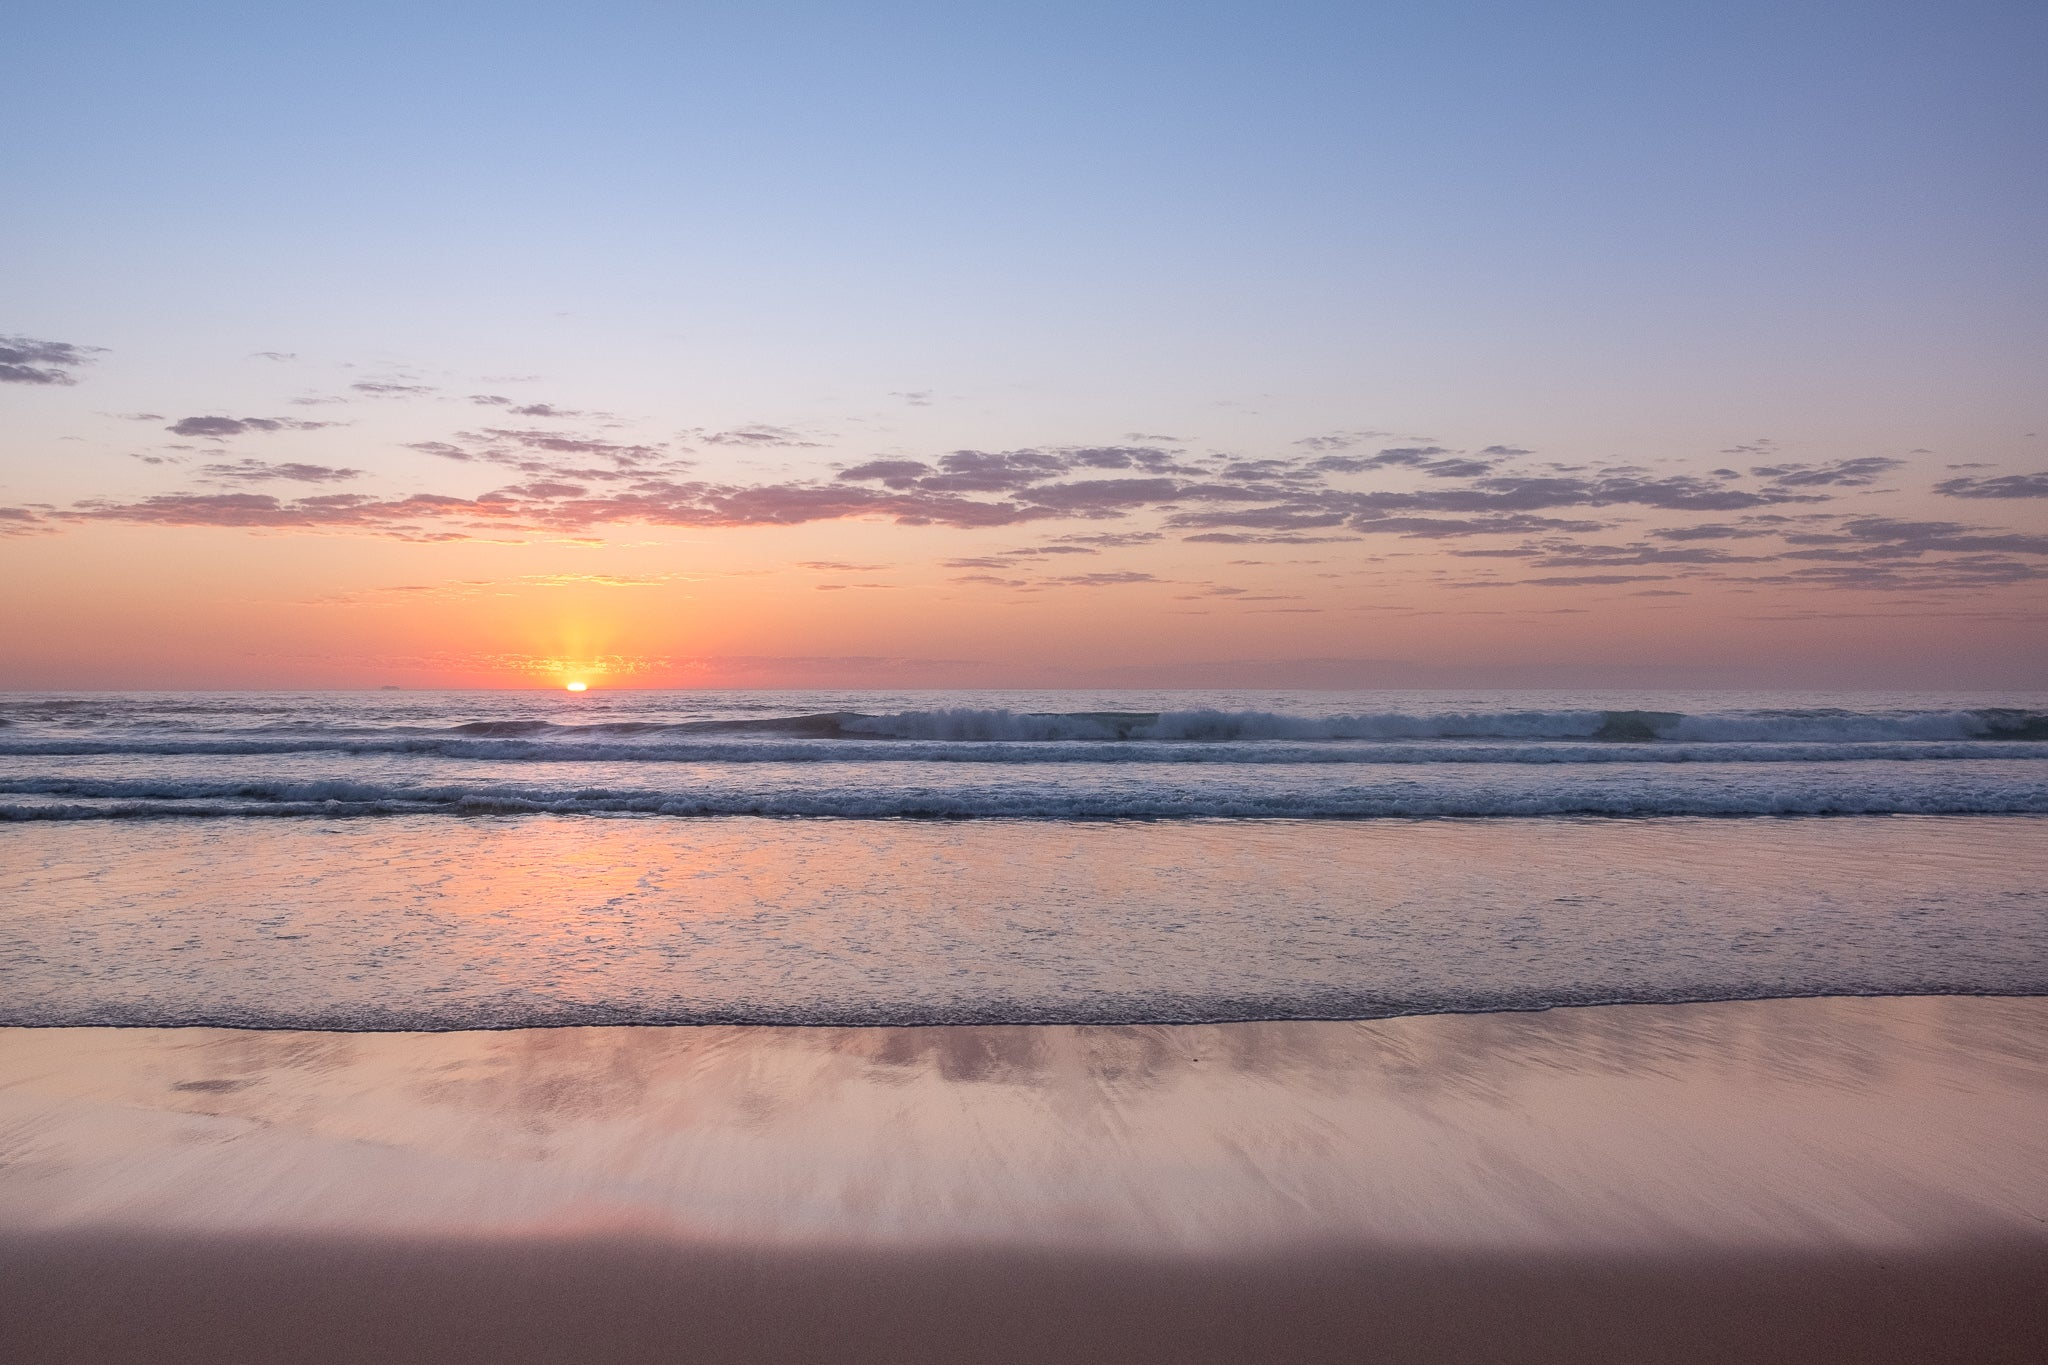 Sunrise photo from the 4th October 2019 at Manly Beach in Sydney